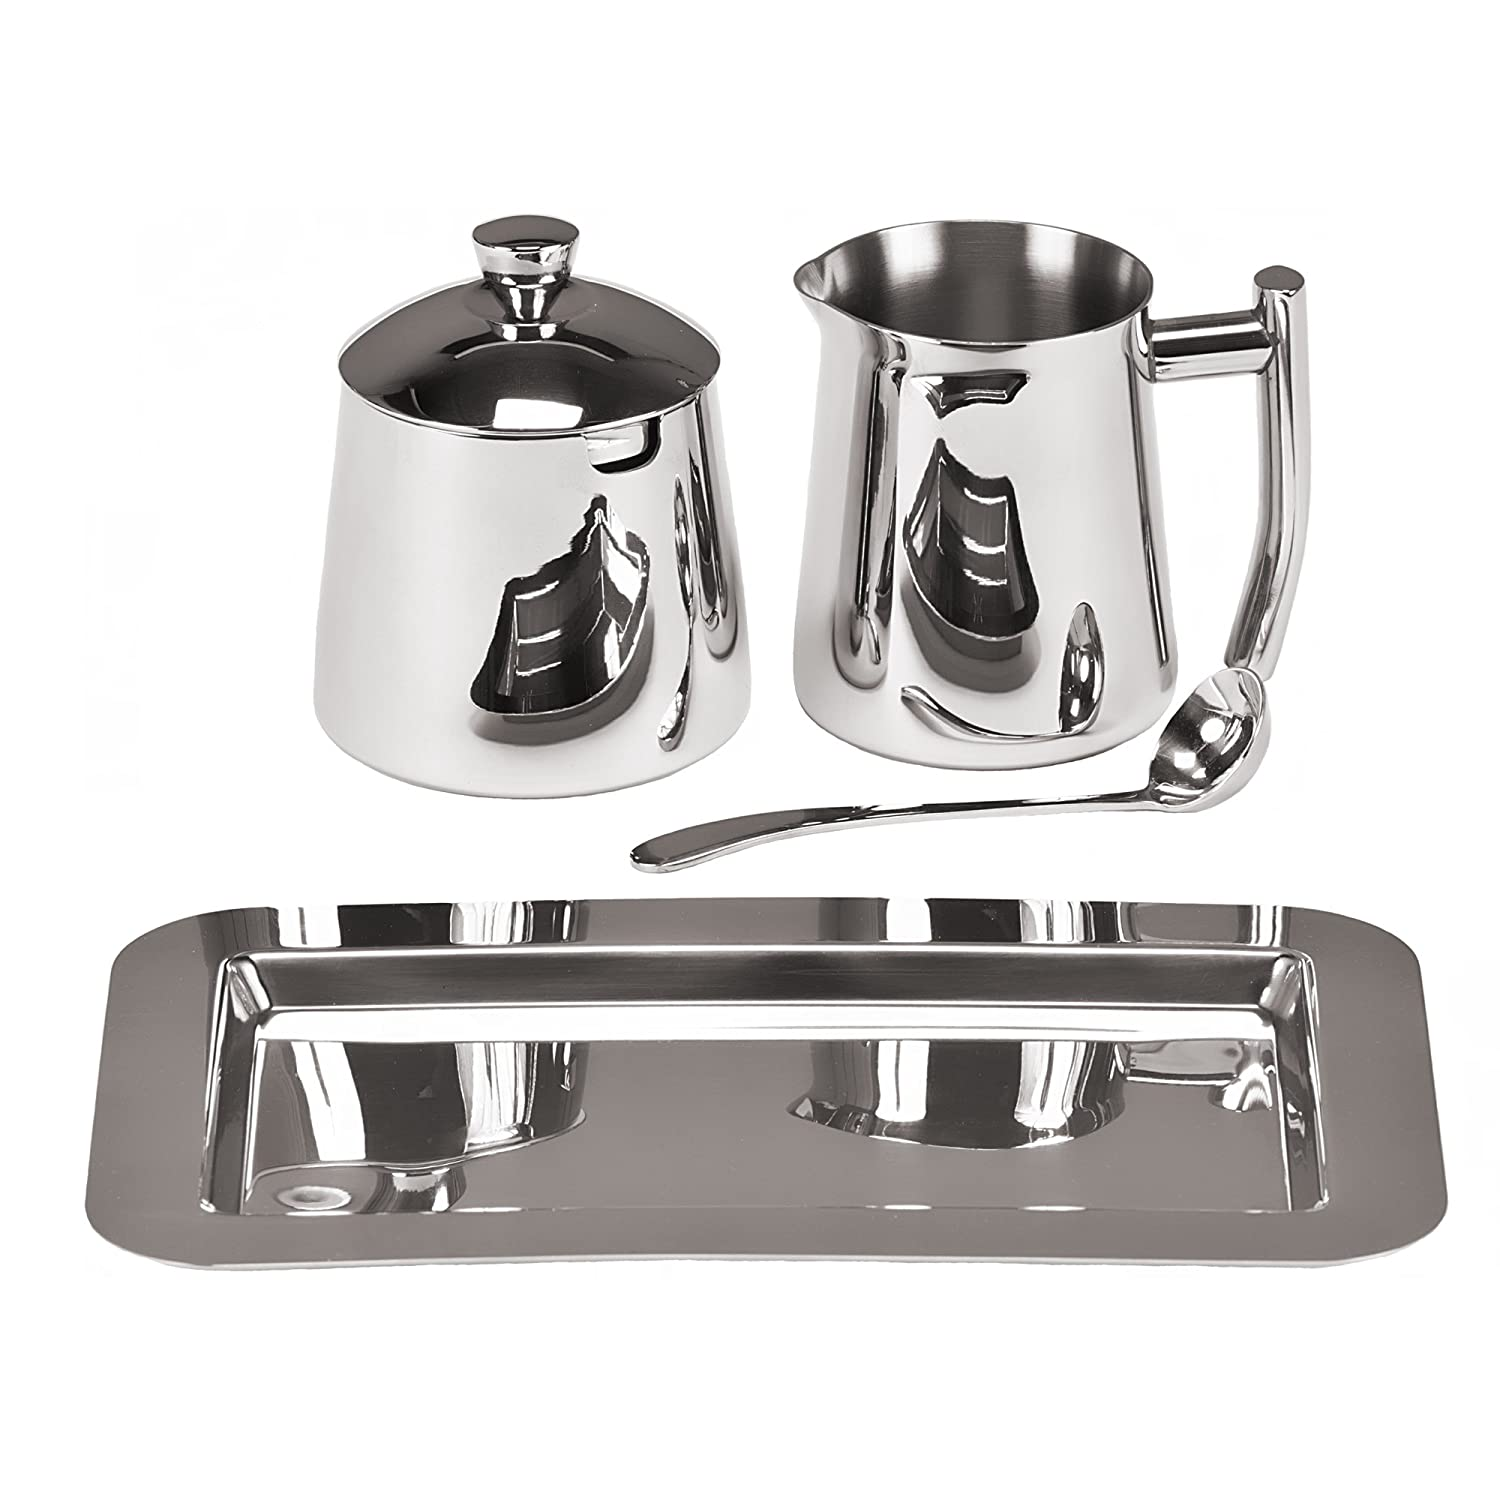 amazoncom  frieling  stainless steel creamer and sugar bowl  - amazoncom  frieling  stainless steel creamer and sugar bowl setcream and sugar sets cream  sugar sets